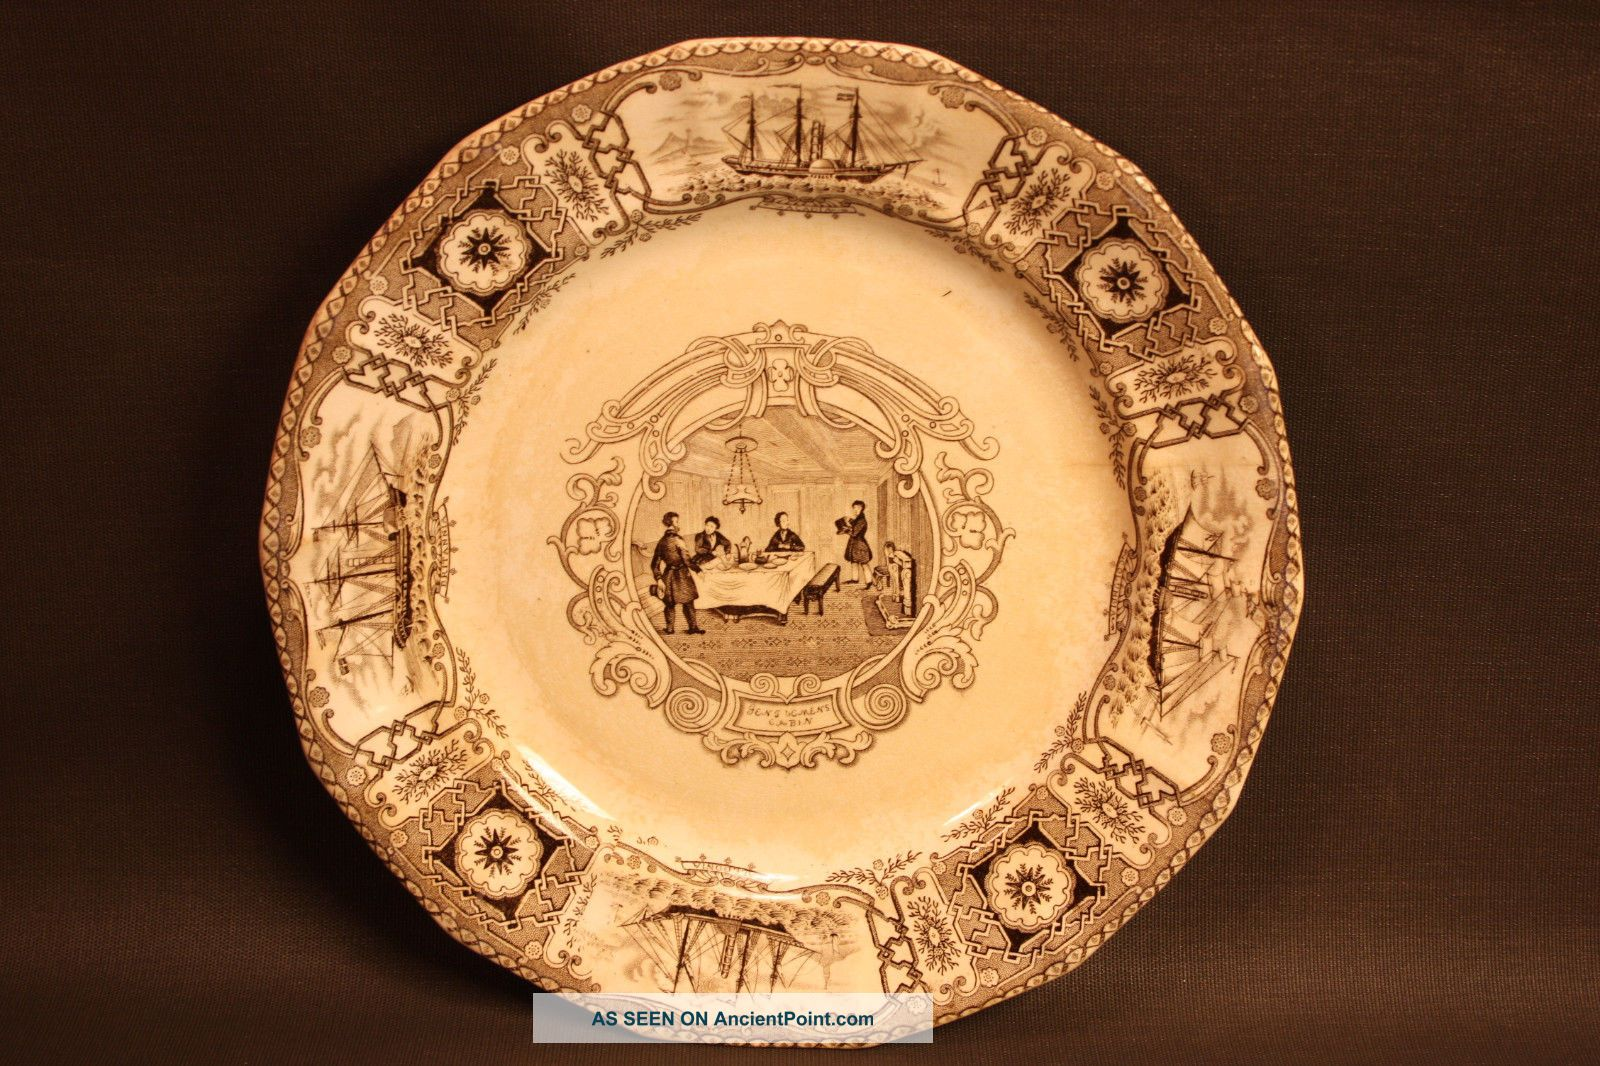 Antique Boston Mails Pattern C1840 Brown Transferware Dinner Plate J & T Edwards Other Maritime Antiques photo